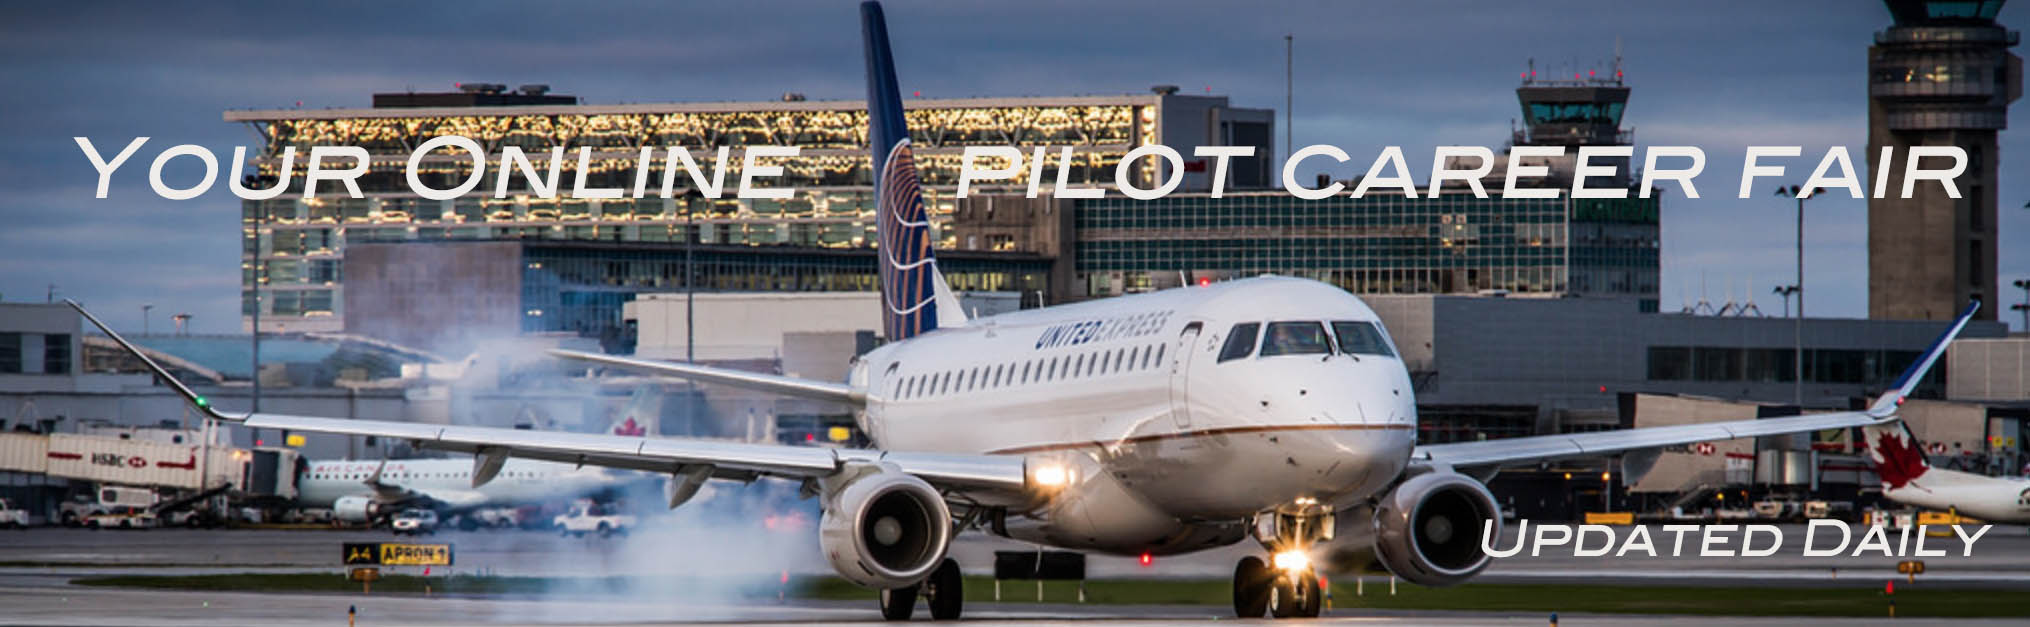 United Express E175 - your online PILOT CAREER FAIR